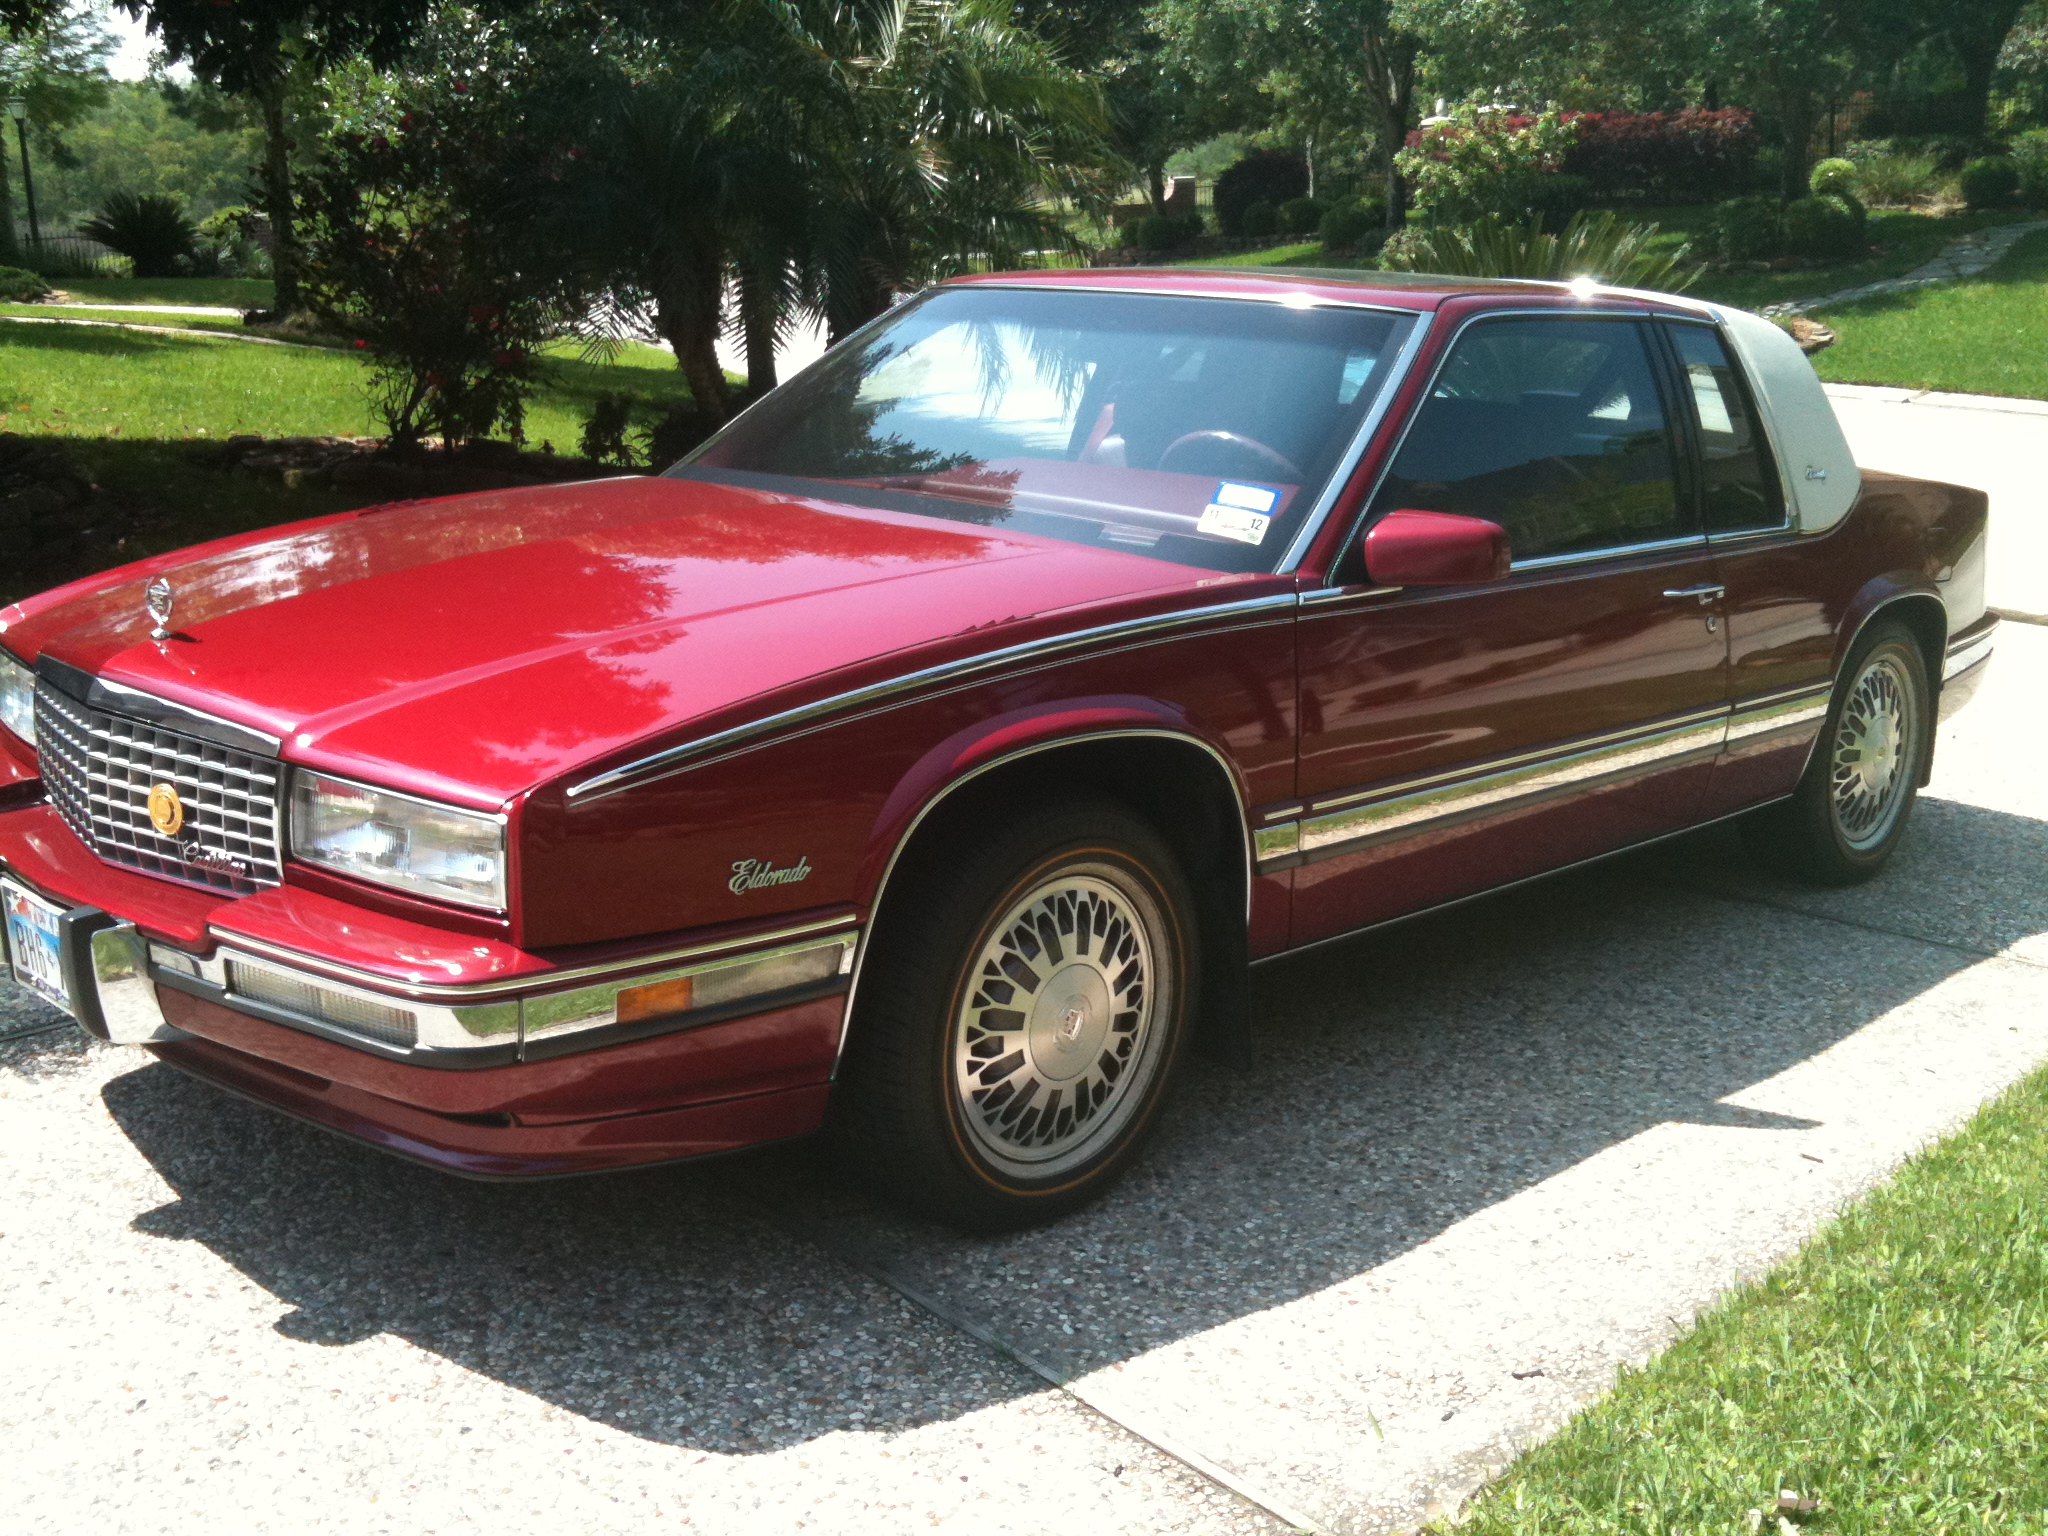 1991 cadillac eldorado information and photos zombiedrive. Black Bedroom Furniture Sets. Home Design Ideas